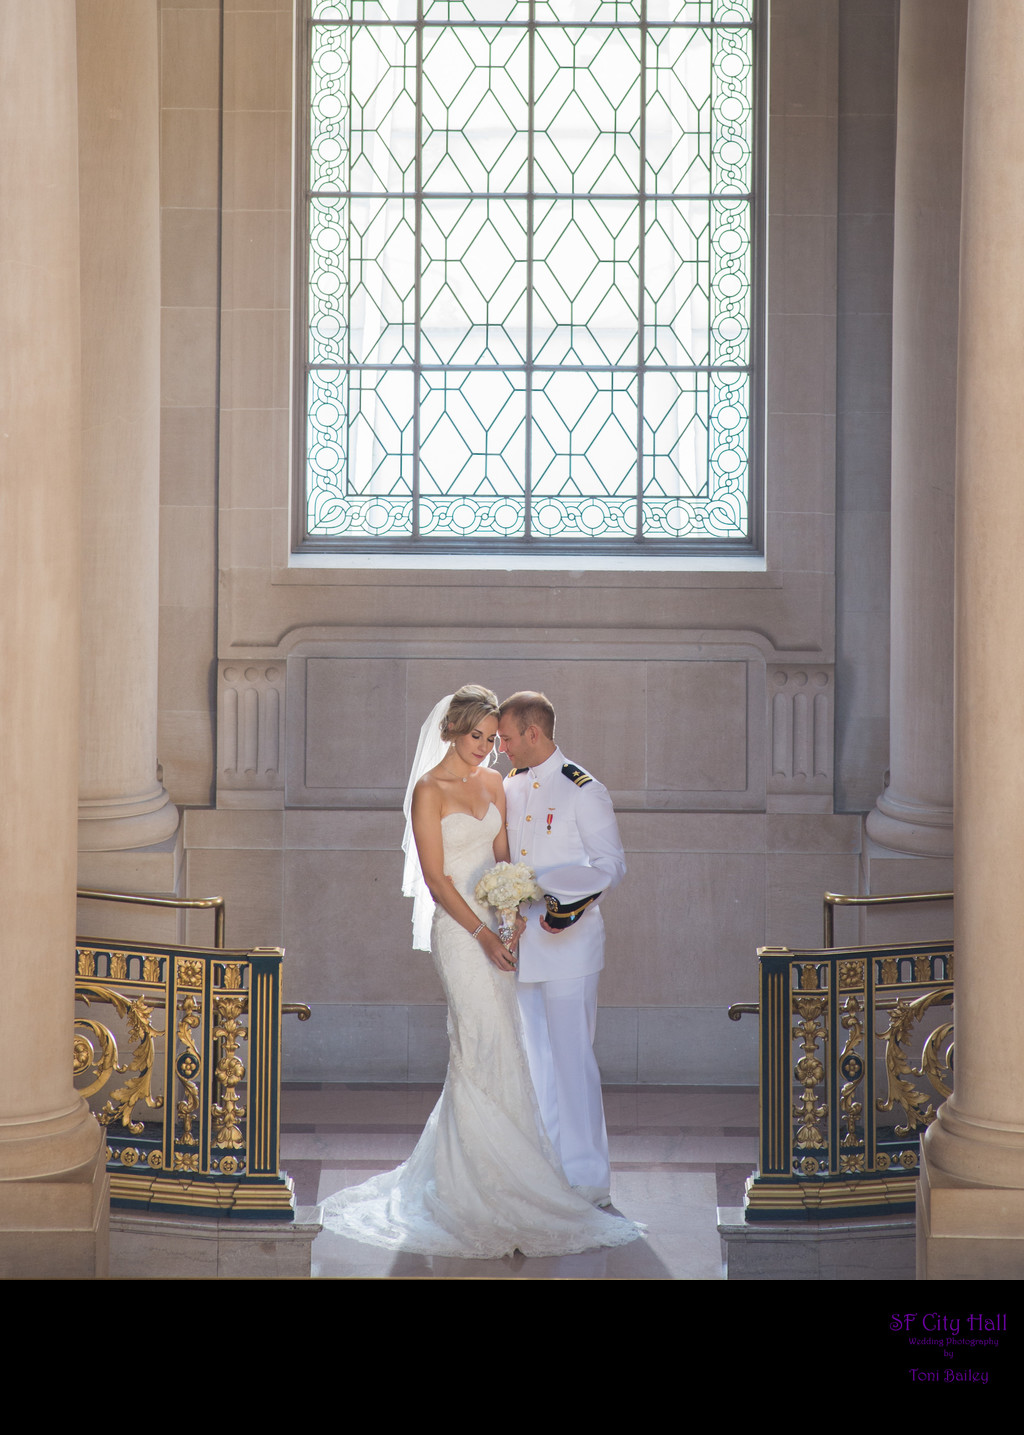 San Francisco city hall wedding photography - Navy Bride and Groom